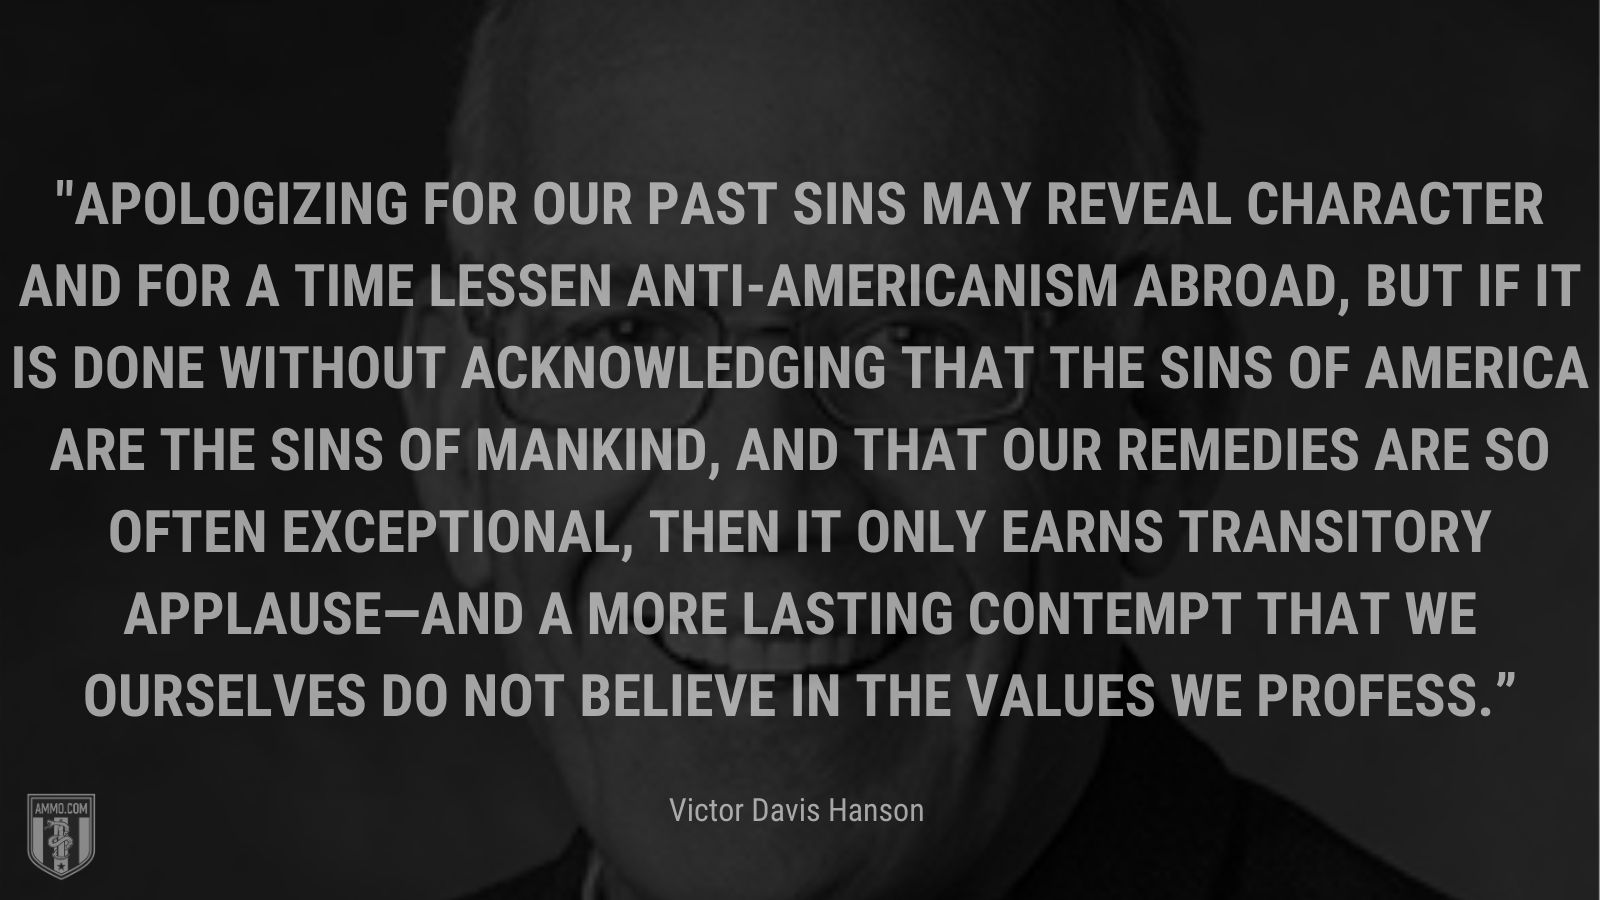 """""""Apologizing for our past sins may reveal character and for a time lessen anti-Americanism abroad, but if it is done without acknowledging that the sins of America are the sins of mankind, and that our remedies are so often exceptional, then it only earns transitory applause—and a more lasting contempt that we ourselves do not believe in the values we profess."""" - Victor Davis Hanson"""